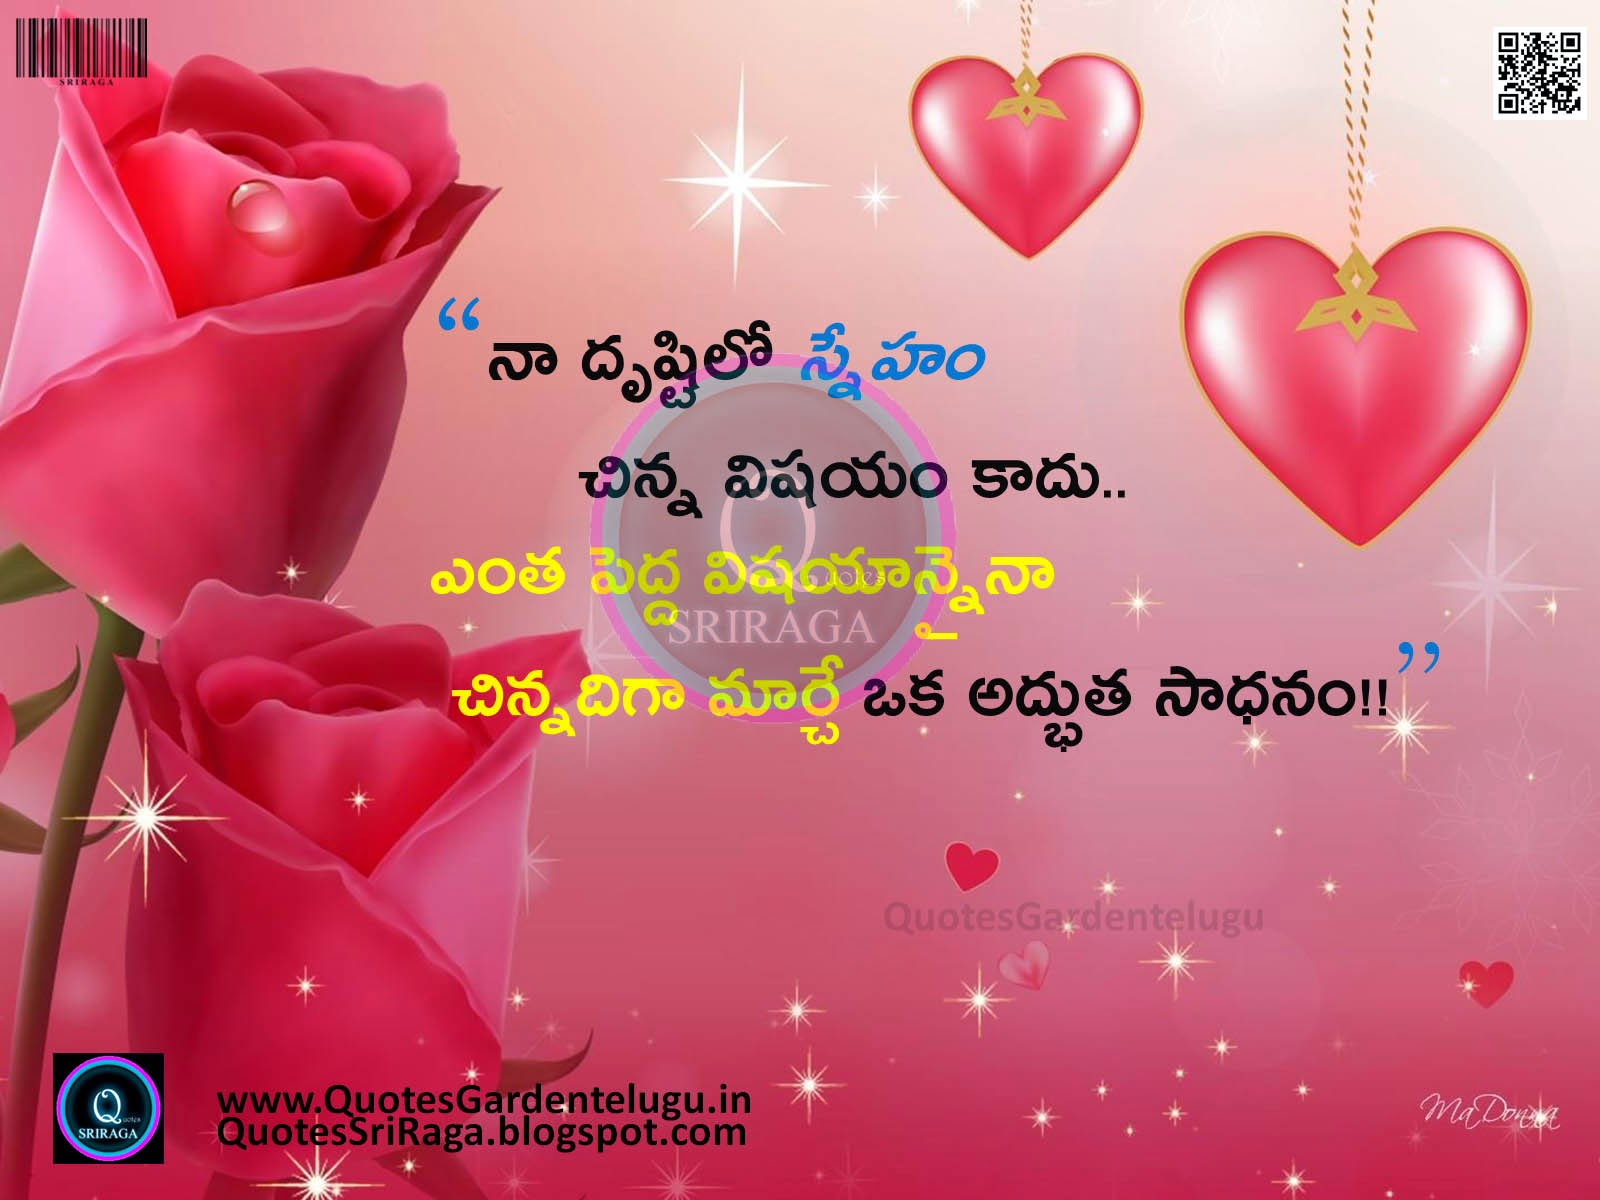 English Quotes About Friendship Best Telugu Friendship Quotes With Images  Quotes Garden Telugu